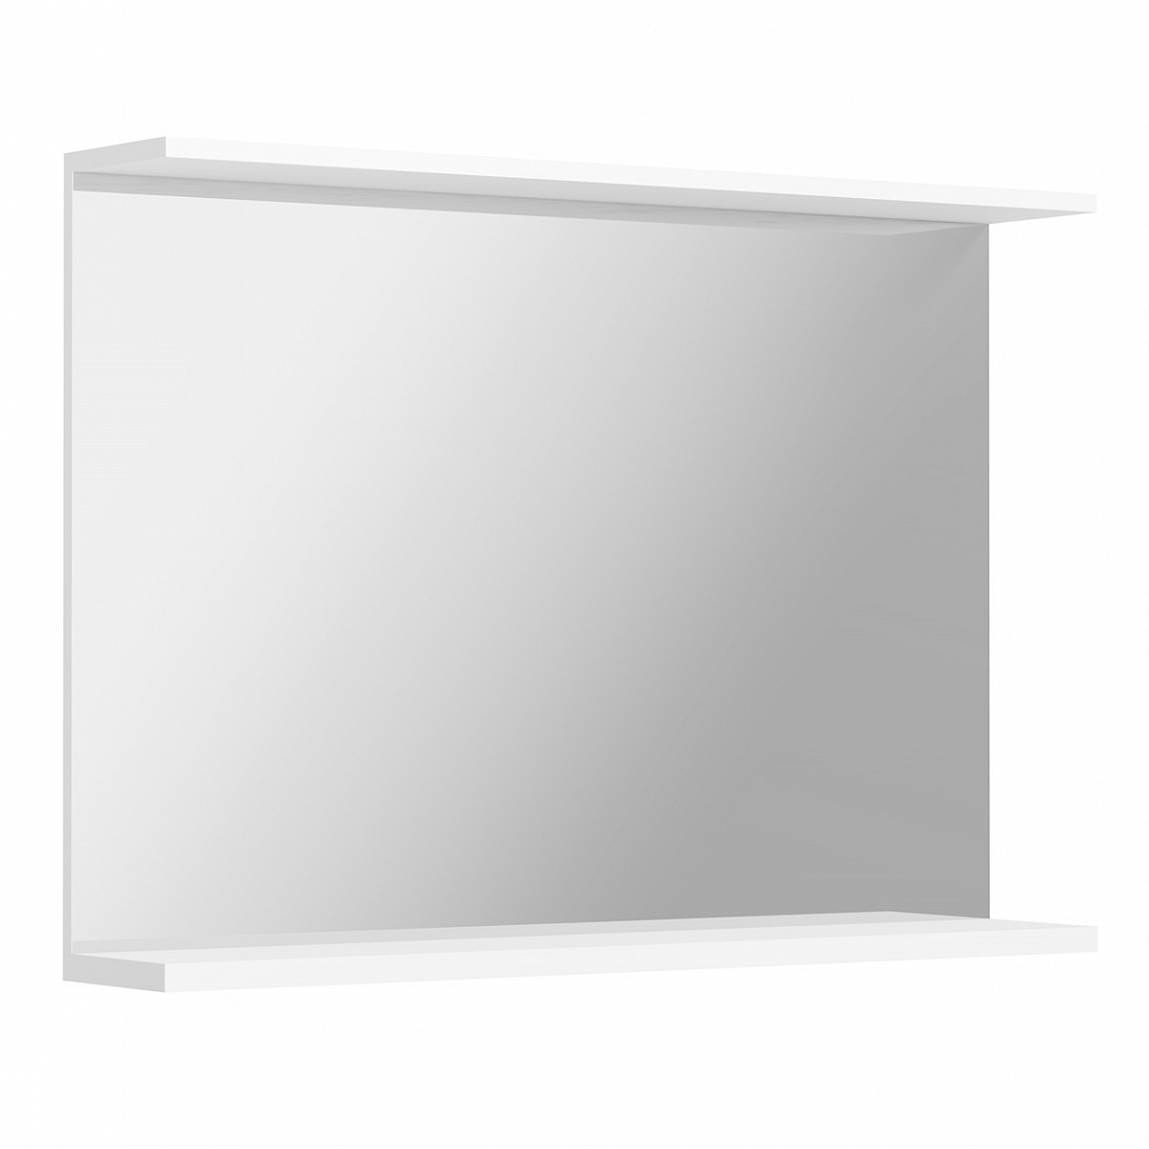 Orchard Florence white bathroom mirror 1050mm